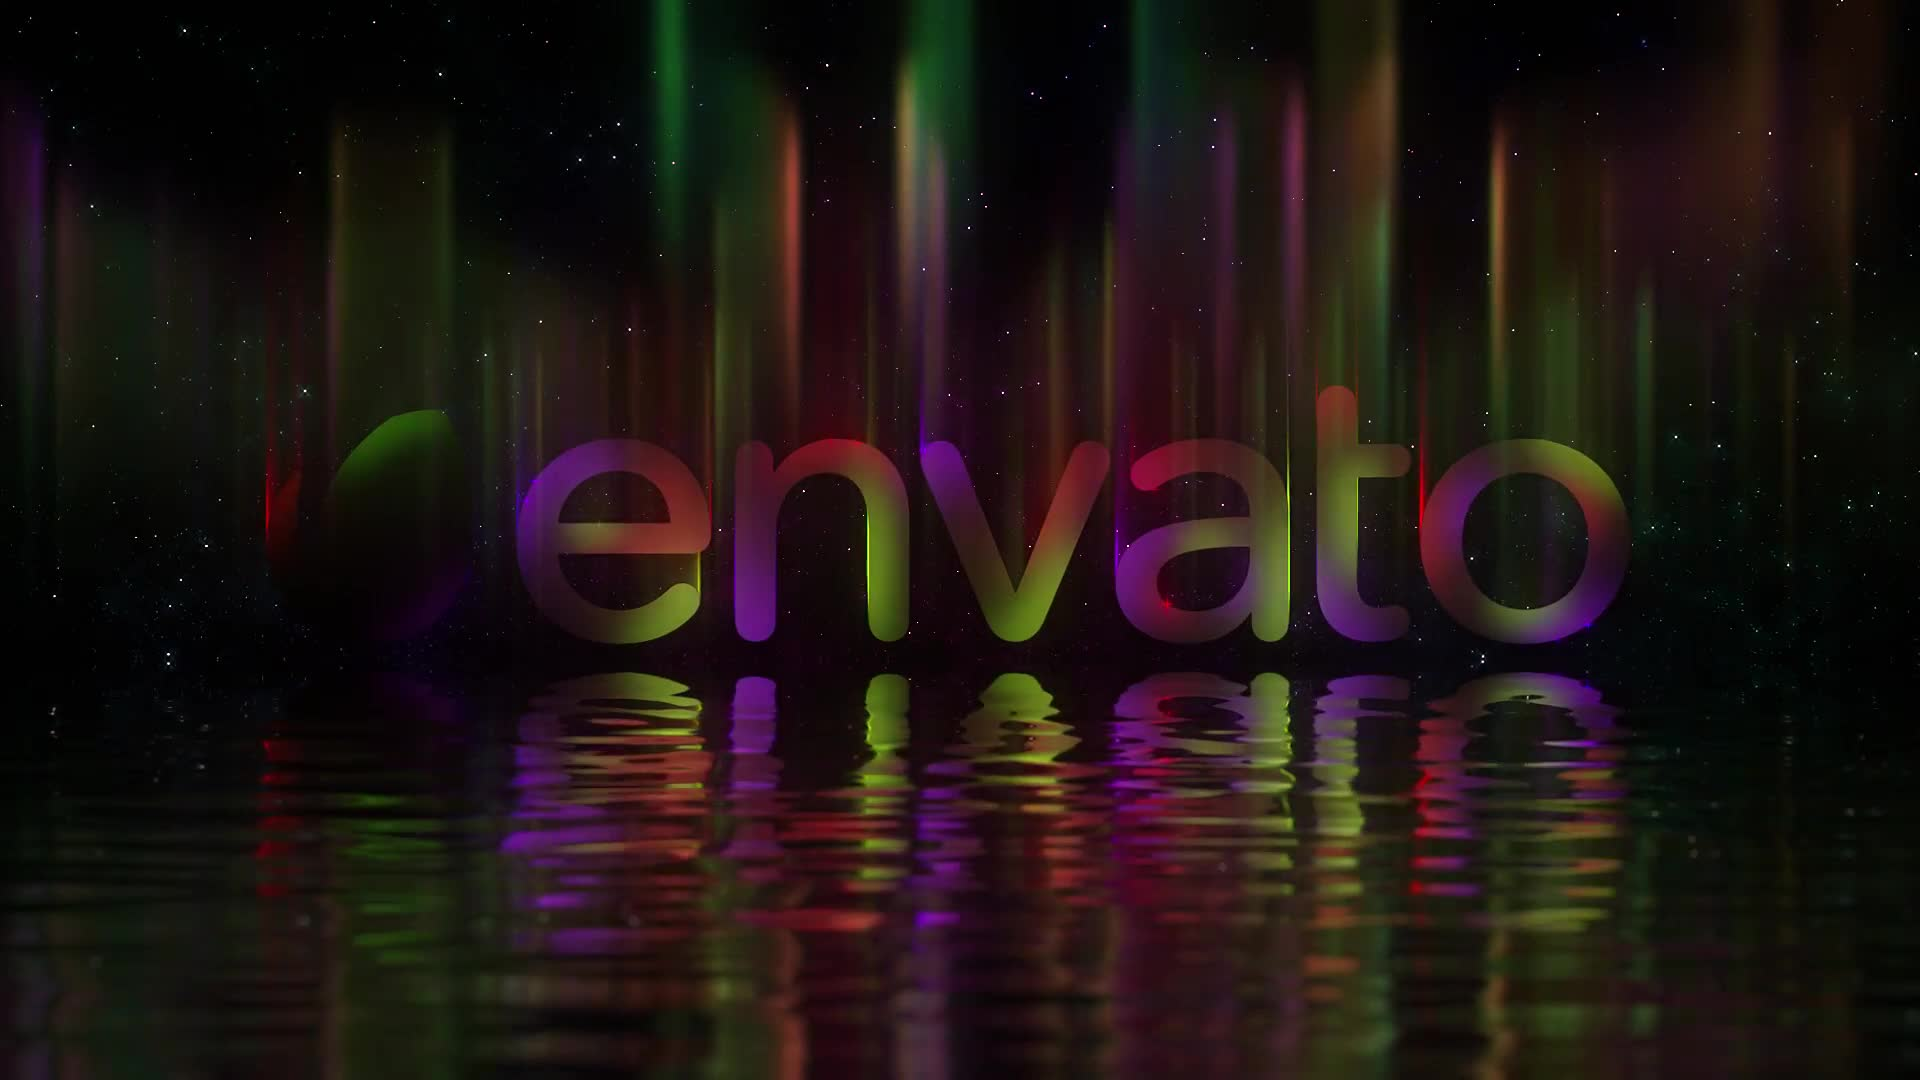 Northern Lights Logo Videohive 25503770 After Effects Image 1